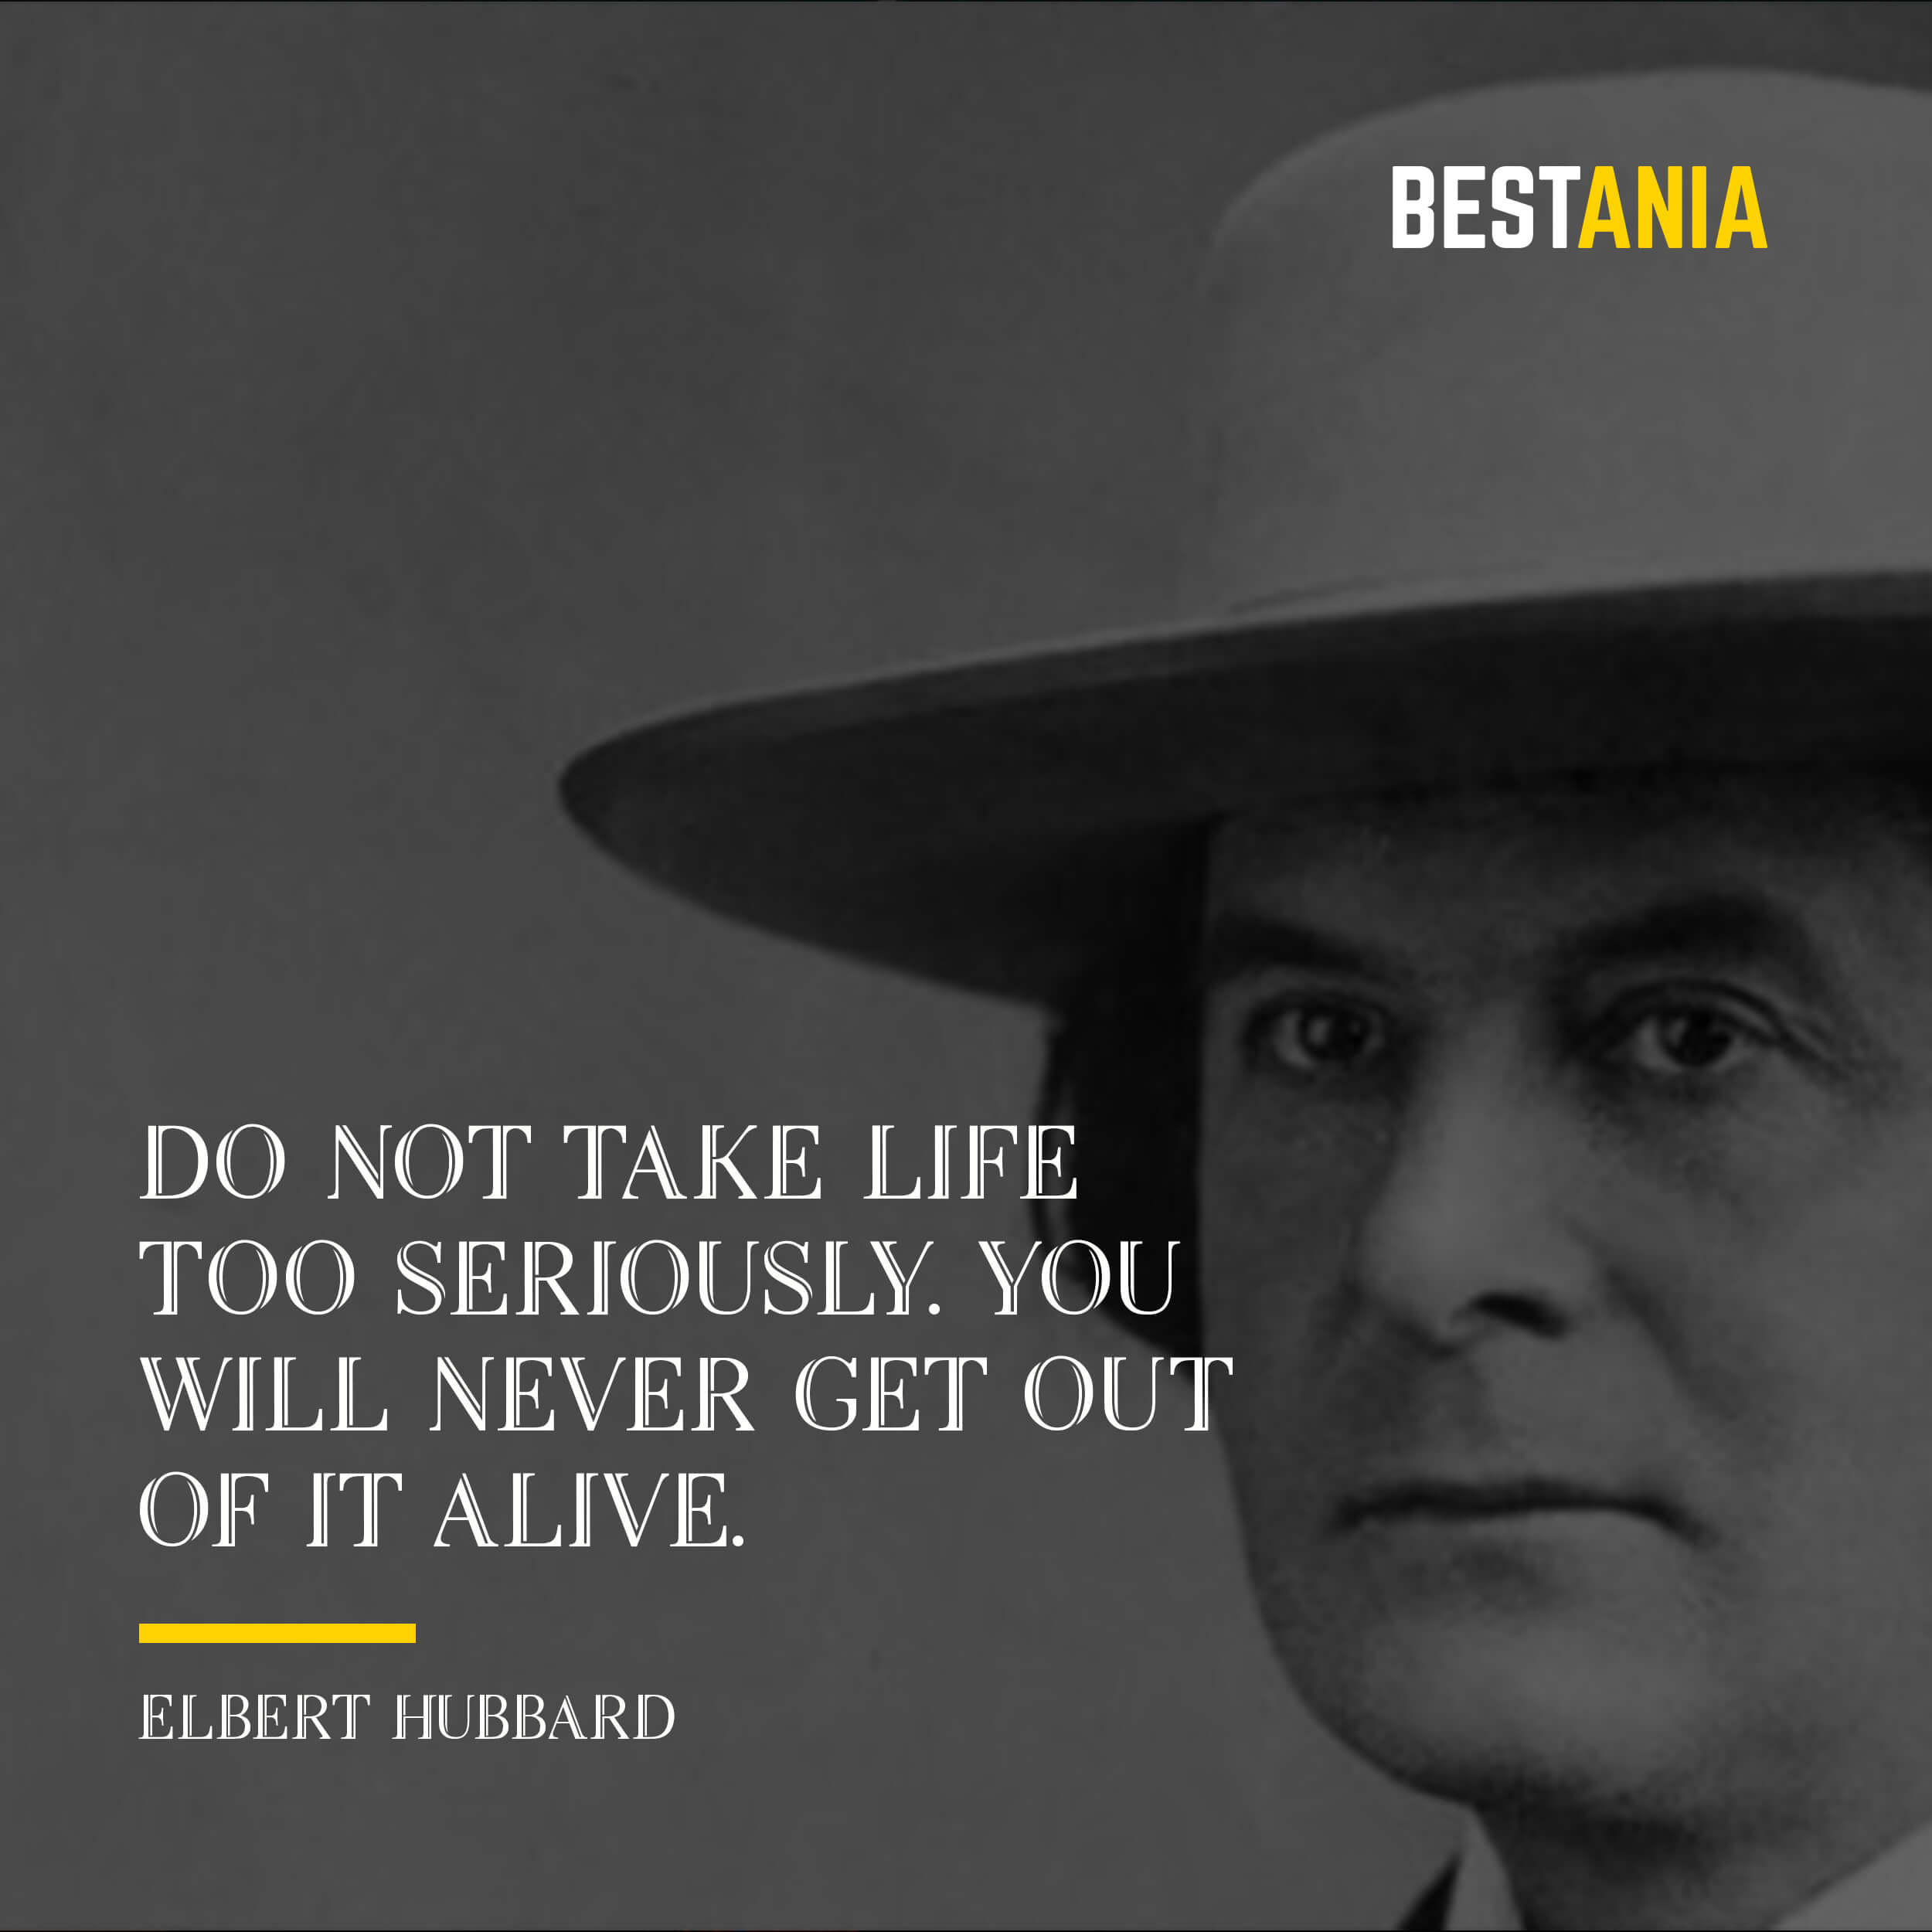 """DO NOT TAKE LIFE TOO SERIOUSLY. YOU WILL NEVER GET OUT OF IT ALIVE.""  ELBERT HUBBARD"